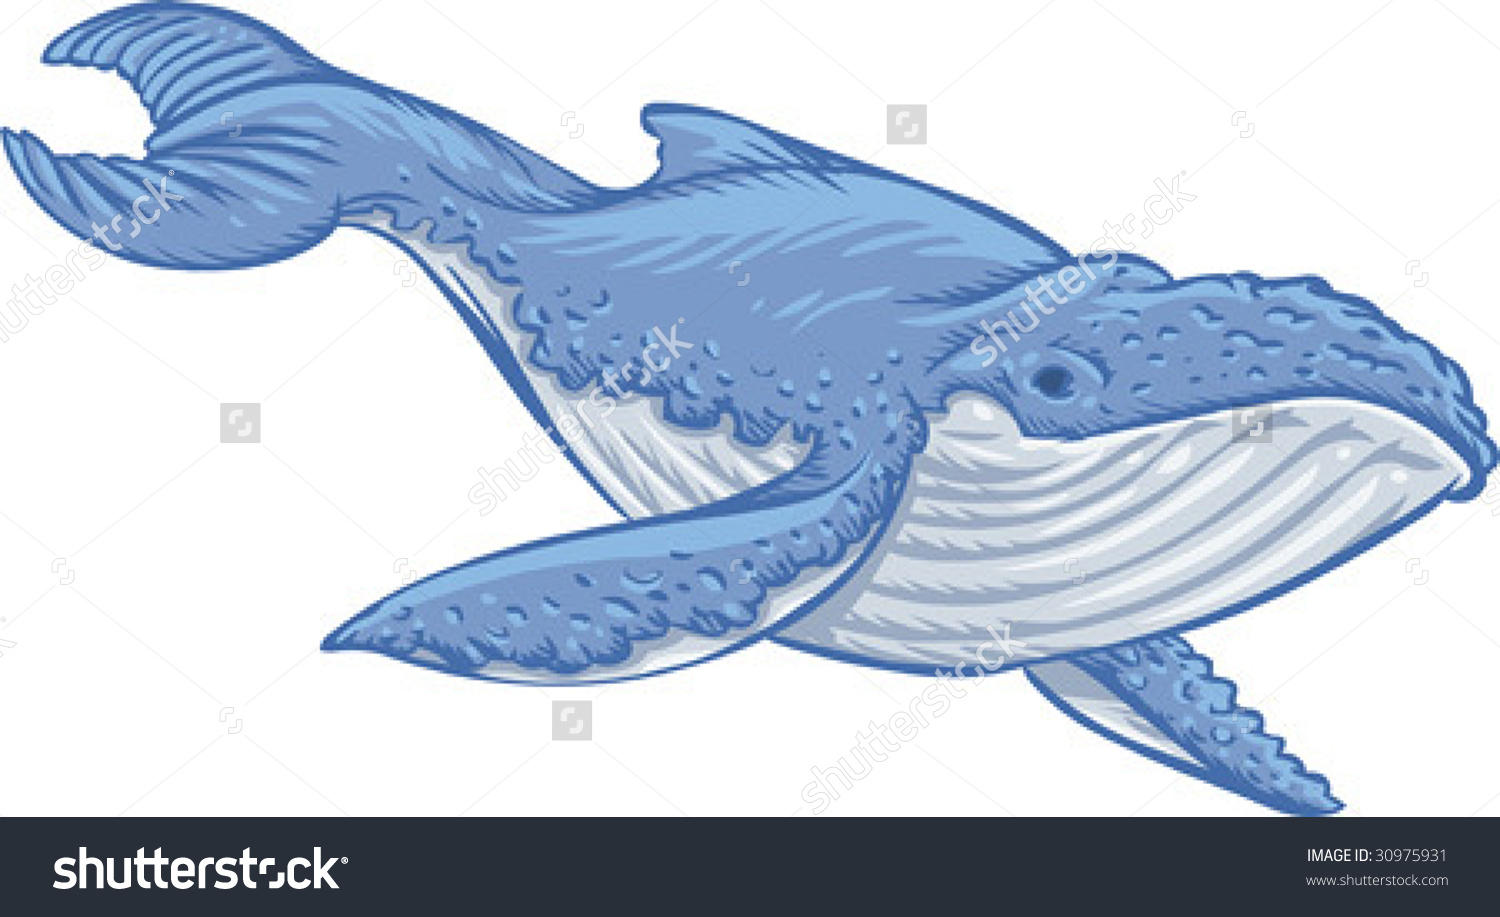 Vector Clip Art Illustration Blue Whale Stock Vector 30975931.